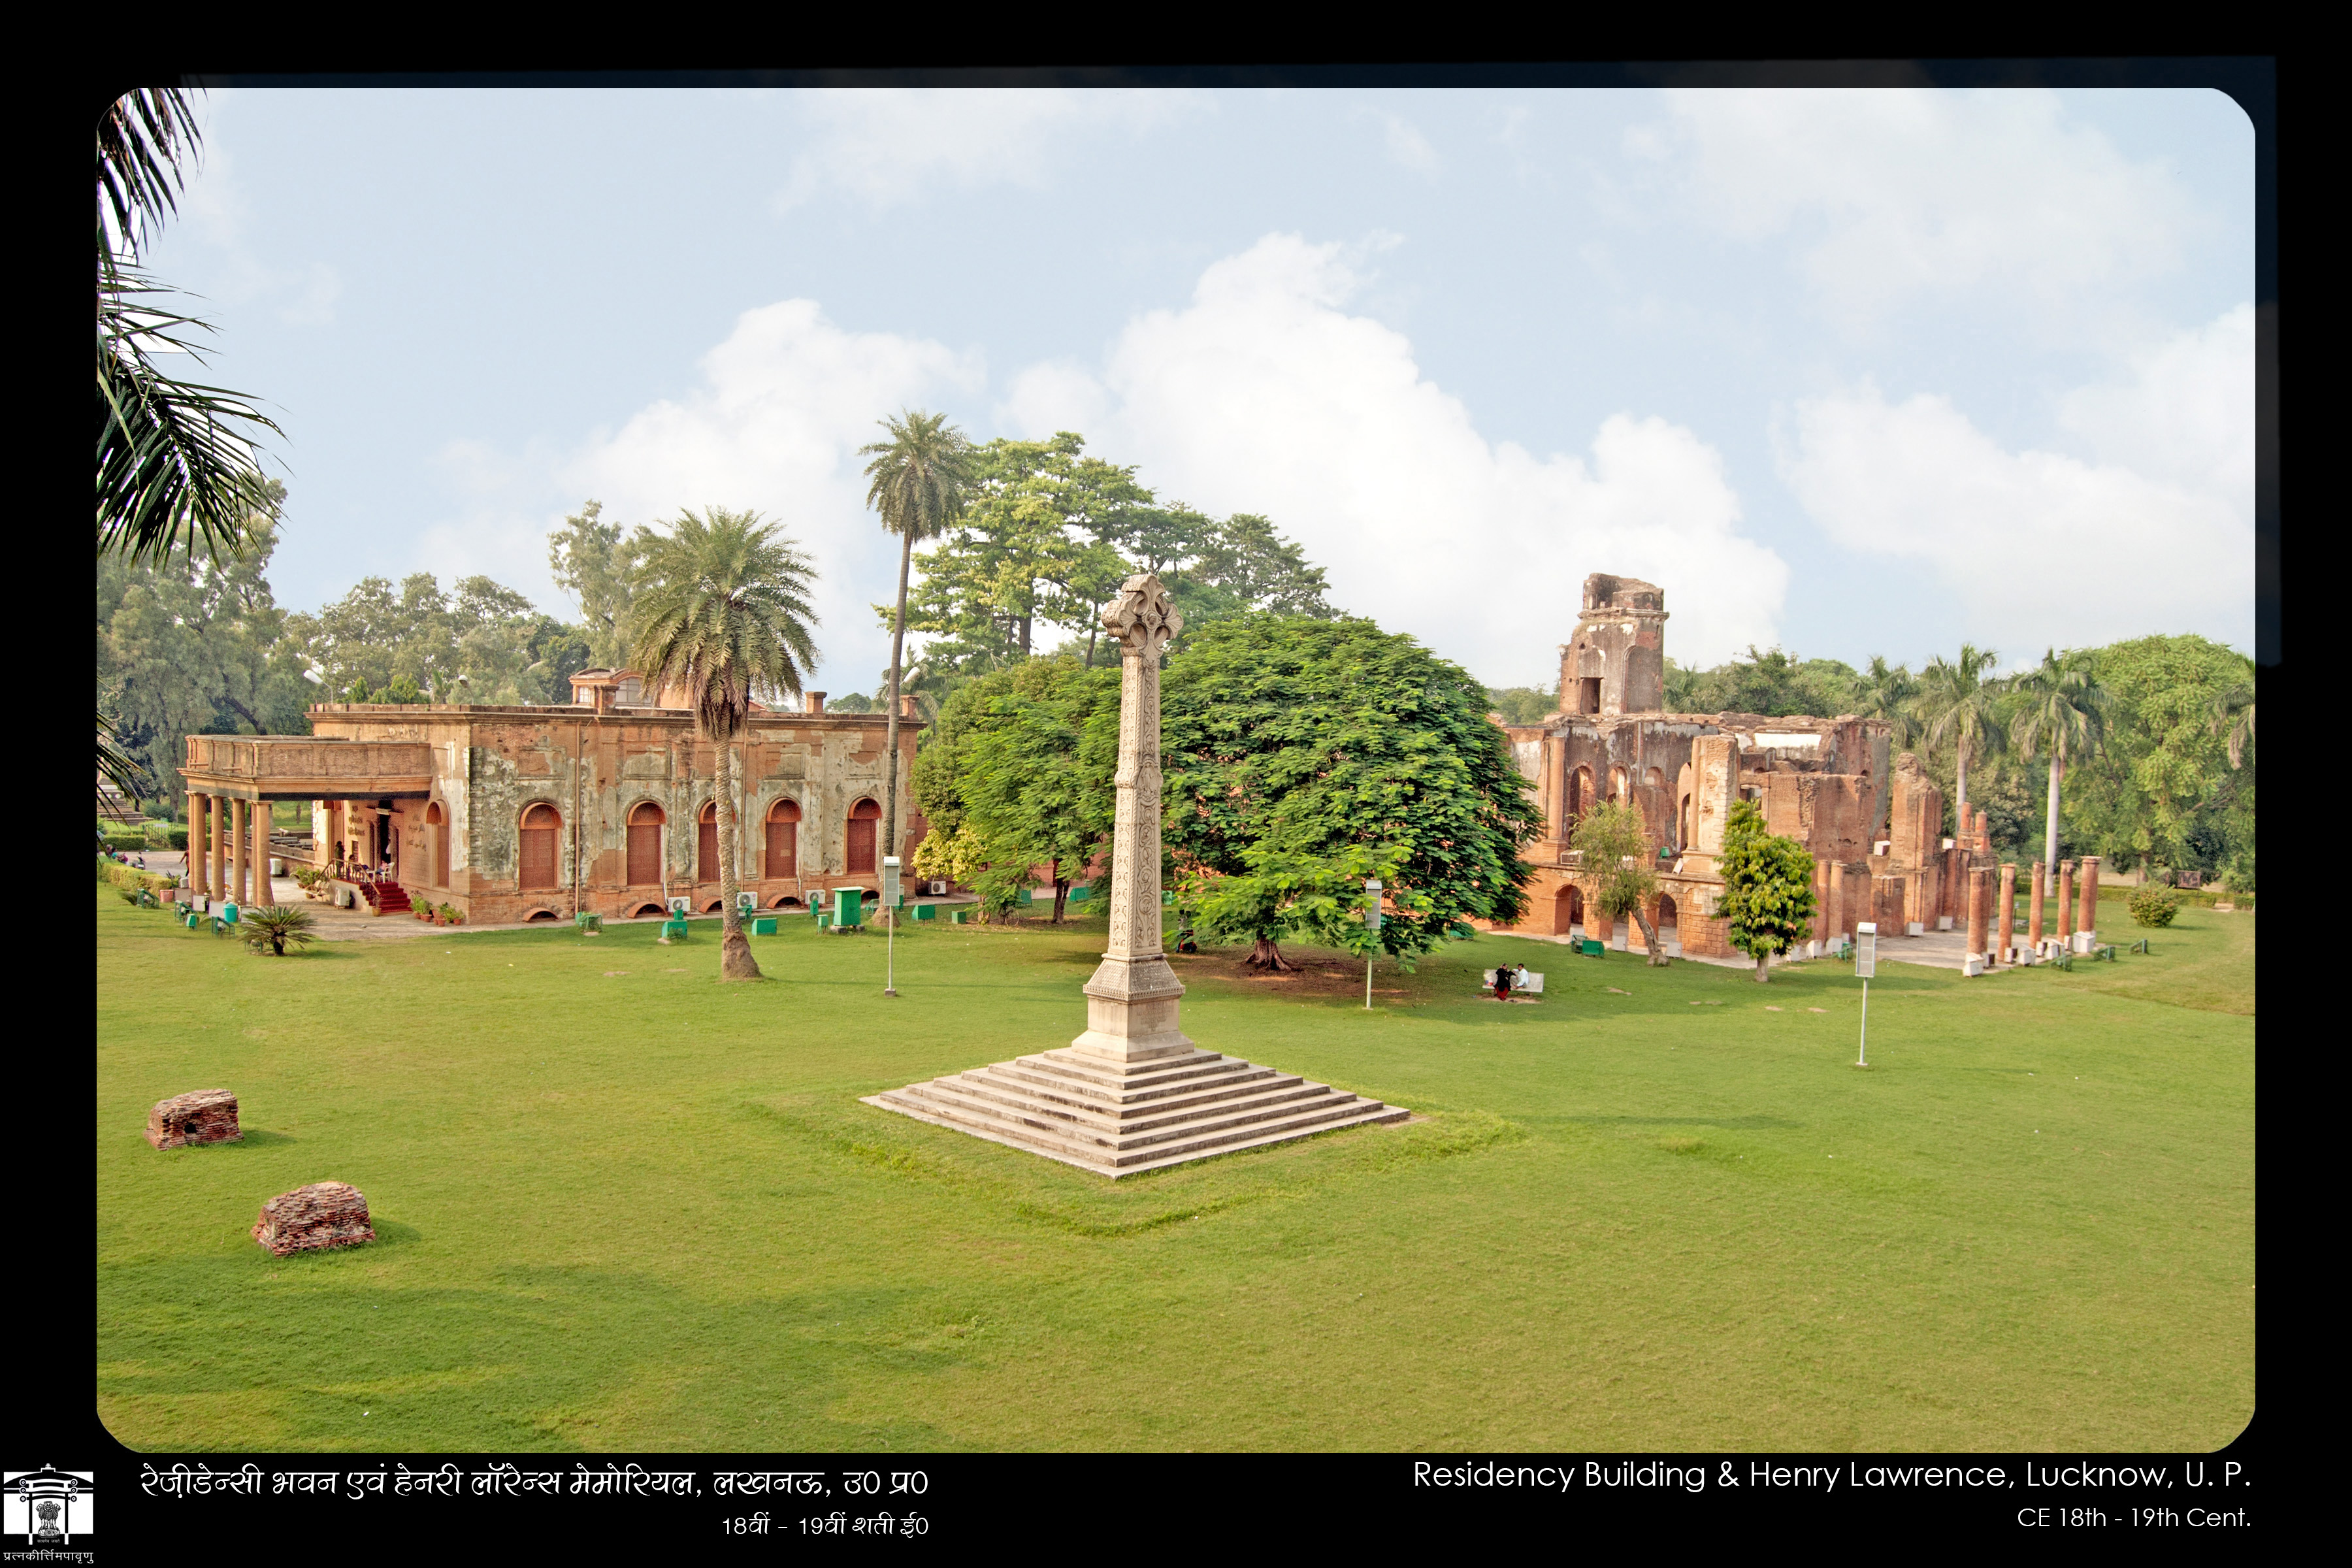 ASI Lucknow Circle | Archaeological Survey of India, Lucknow